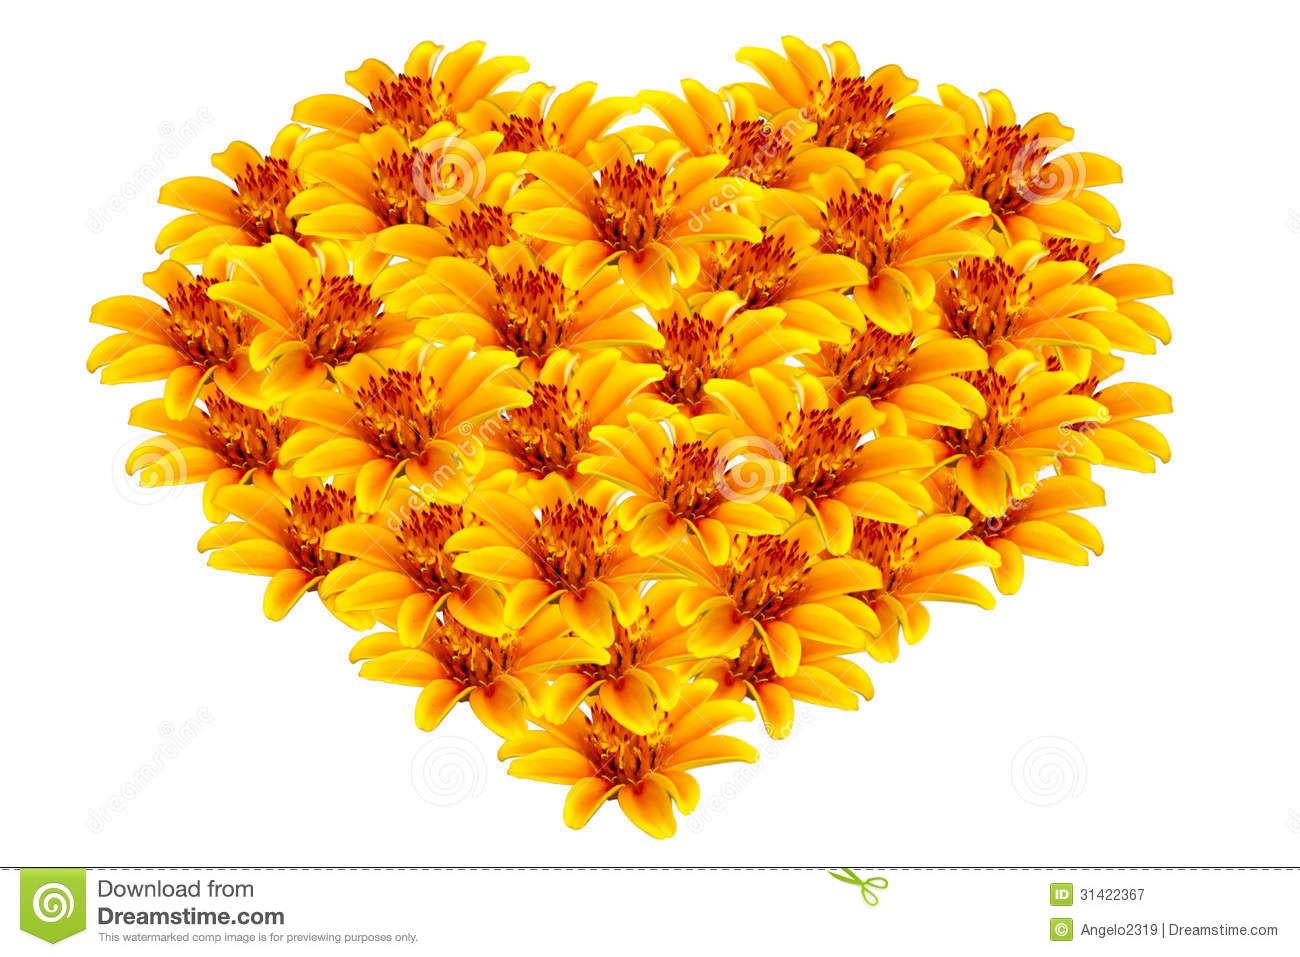 Beautiful yellow flowers heart shaped stock image image of download beautiful yellow flowers heart shaped stock image image of celebration tropical mightylinksfo